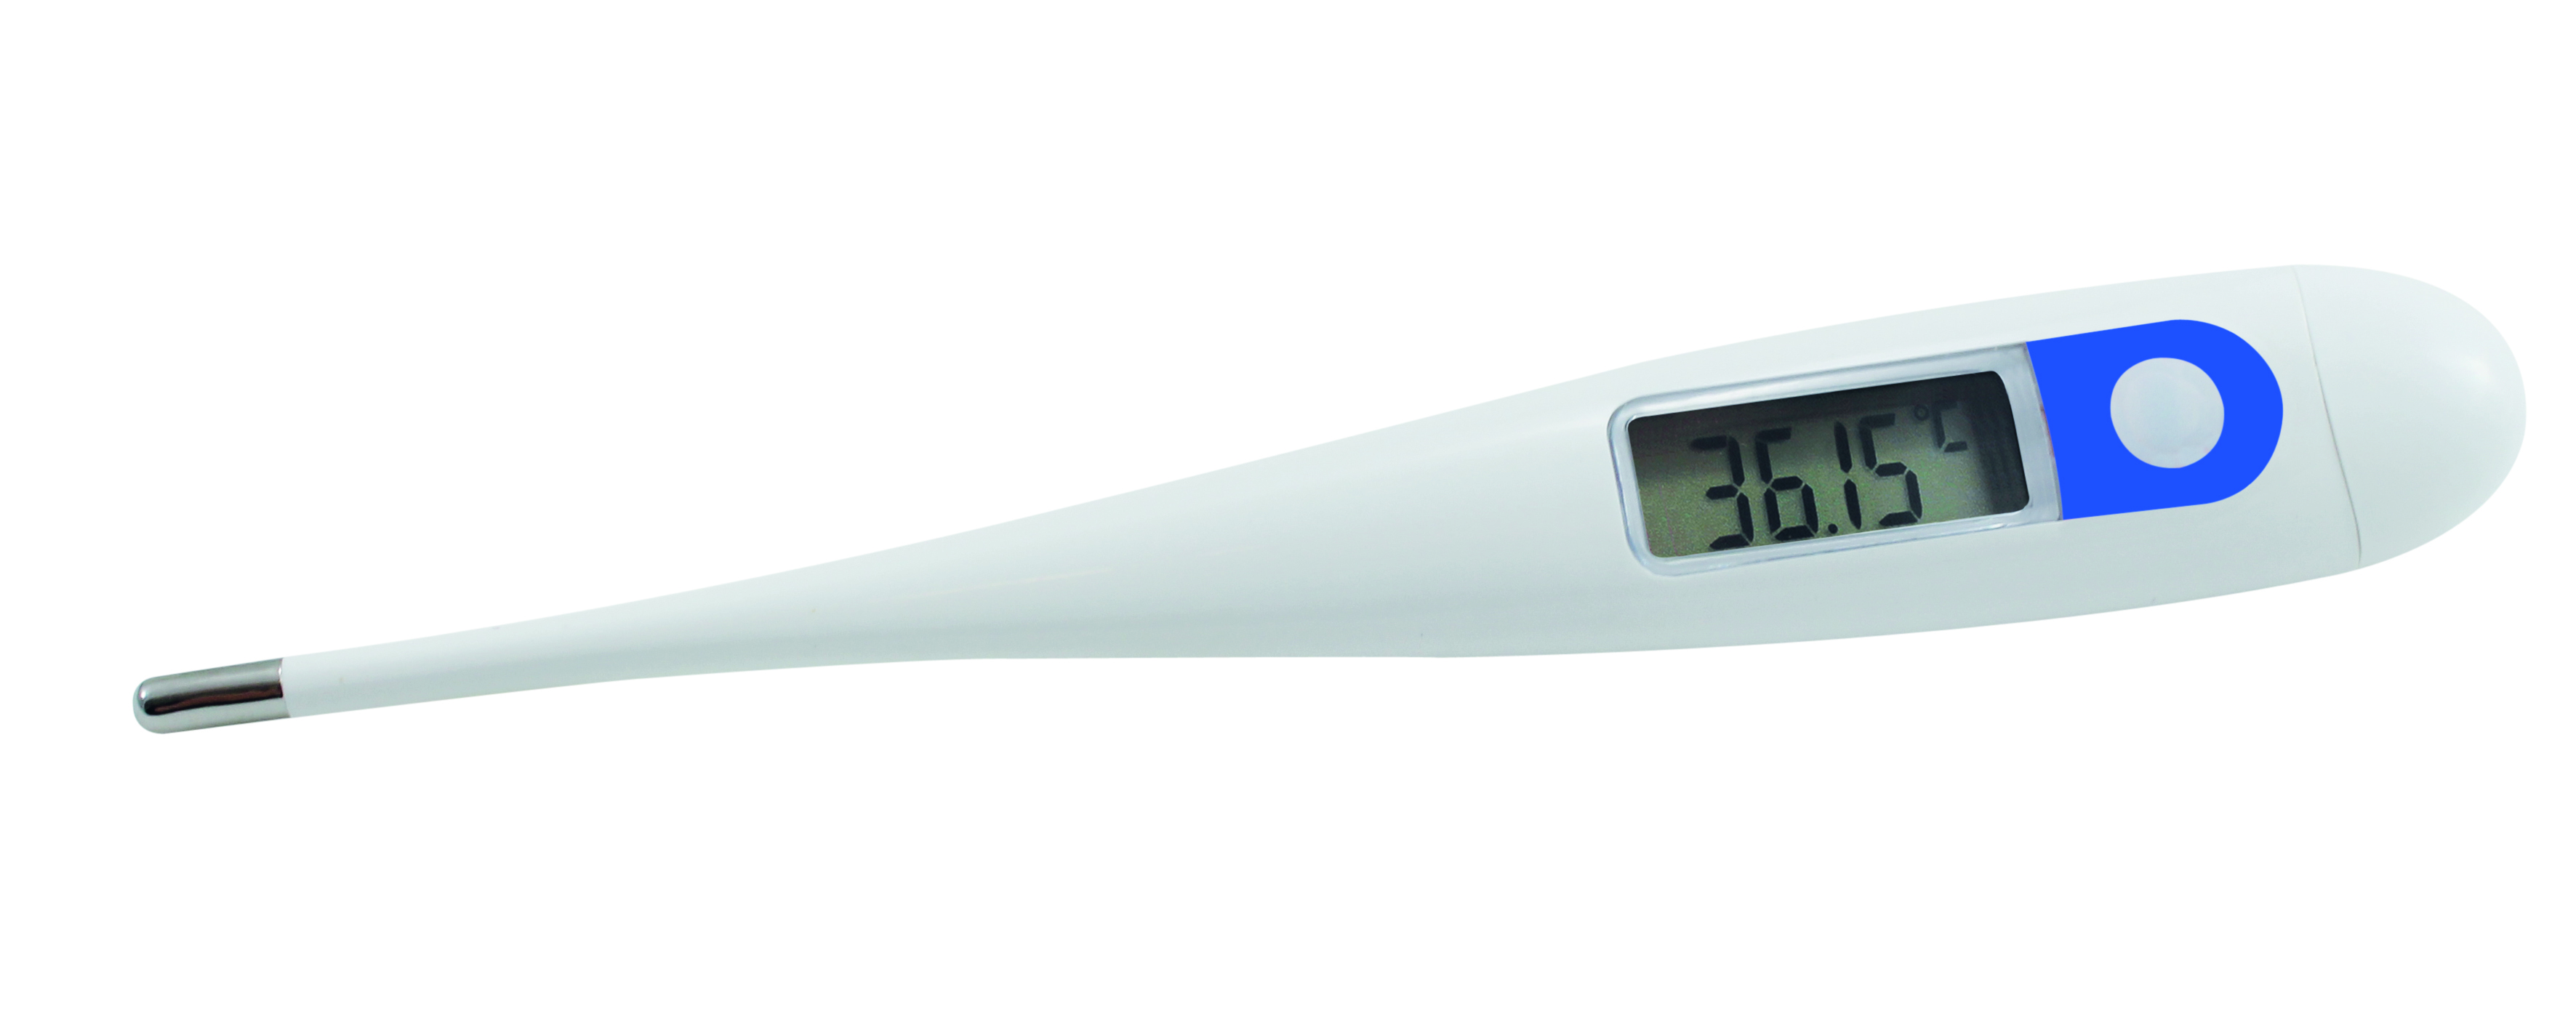 Digital-Fieberthermometer